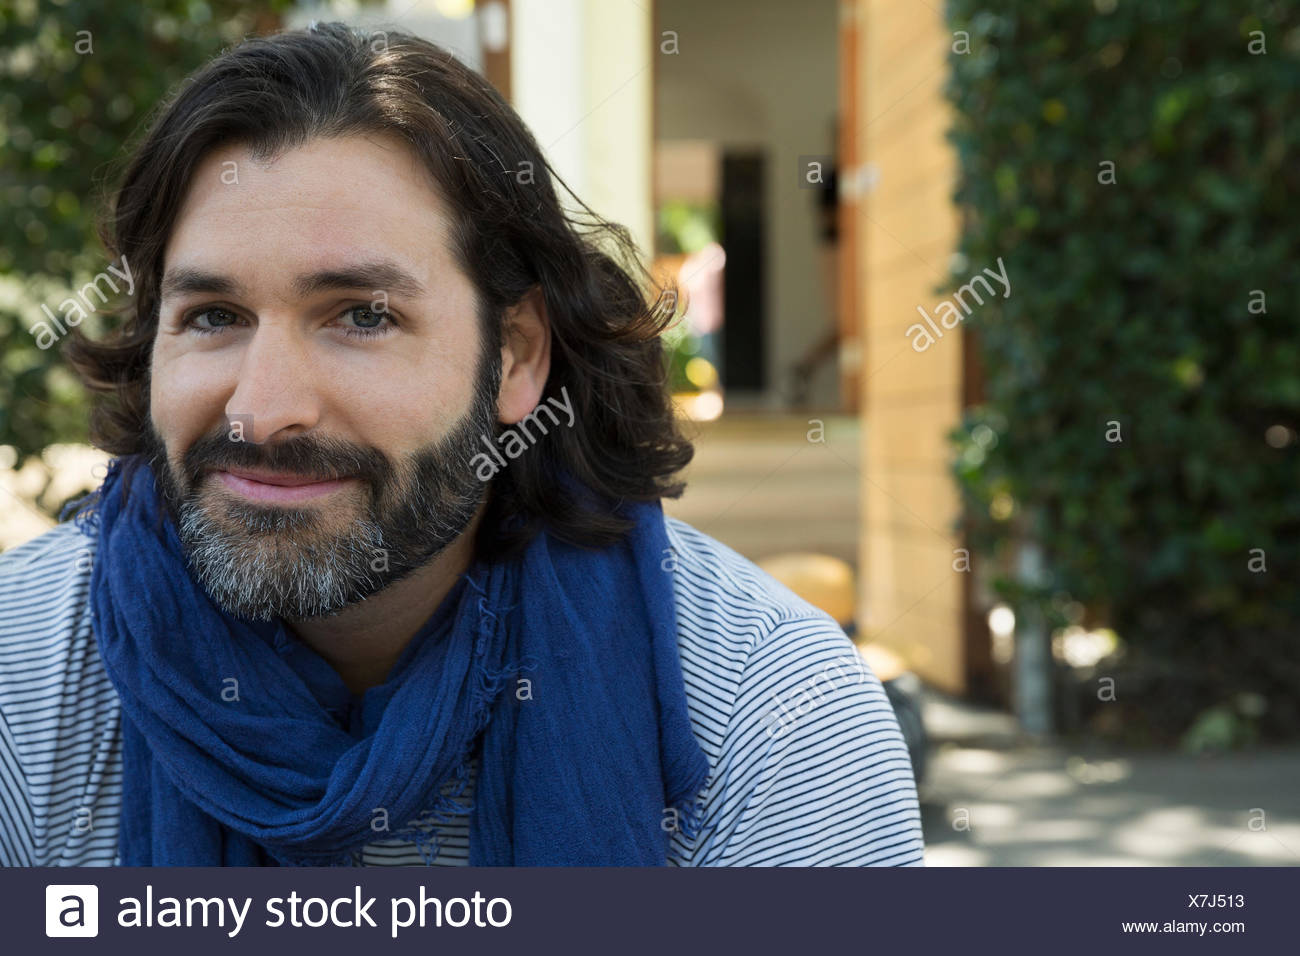 Portrait of smiling man with beard wearing scarf - Stock Image